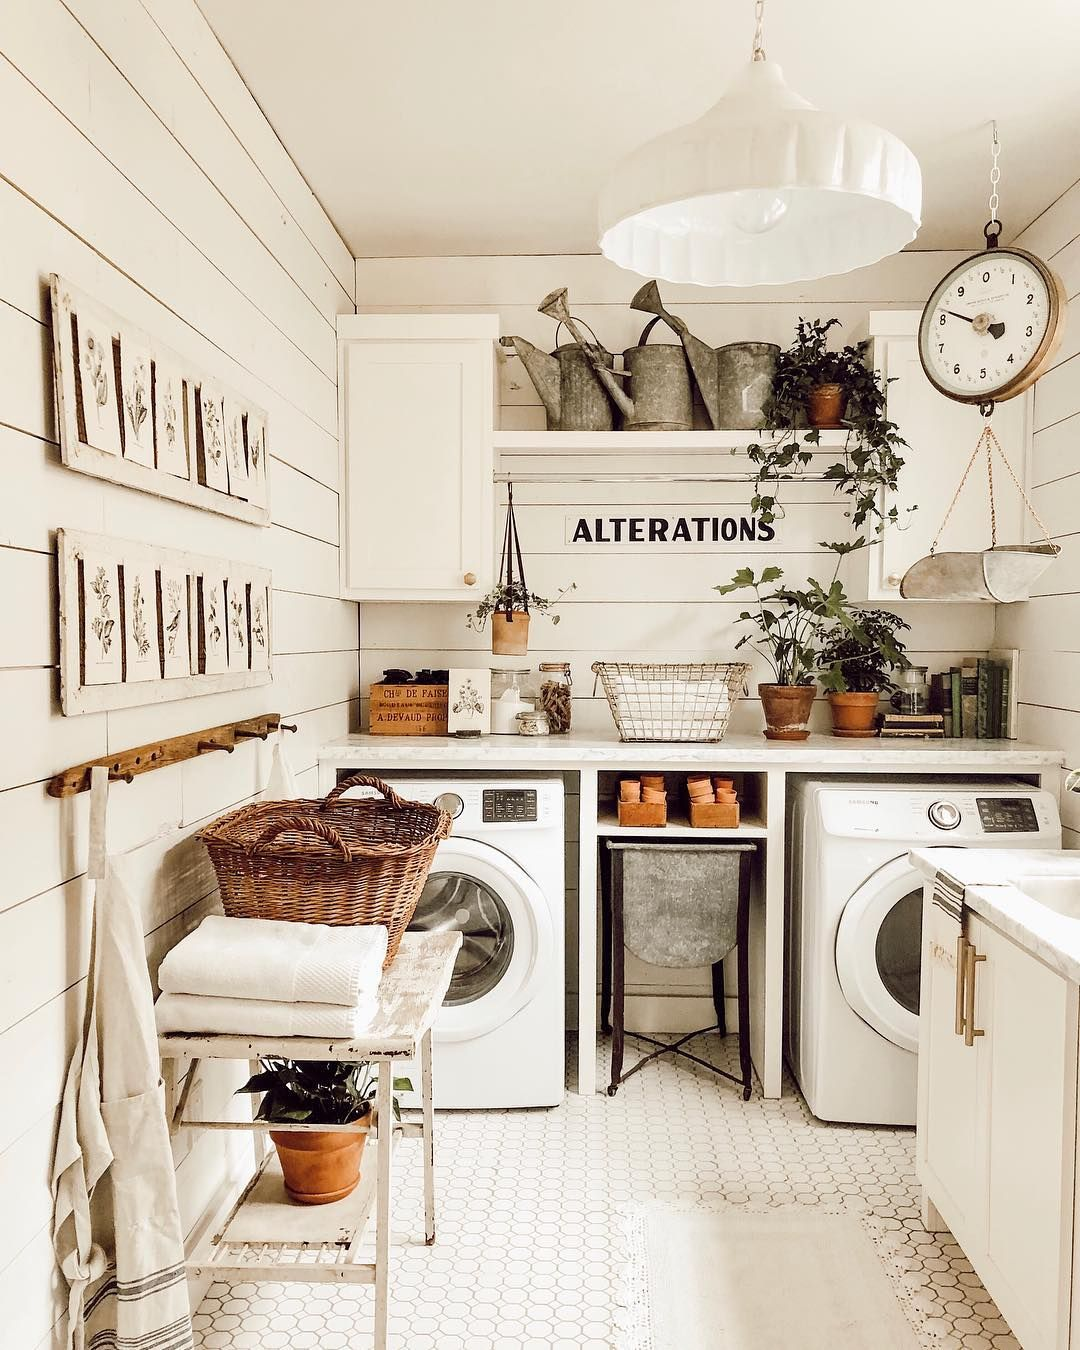 Jamie Whitetail Farmhouse On Instagram If You Follow Me On Pinterest Then You Know How Much I Love G Farmhouse Laundry Room Laundry Room Decor Laundry Room